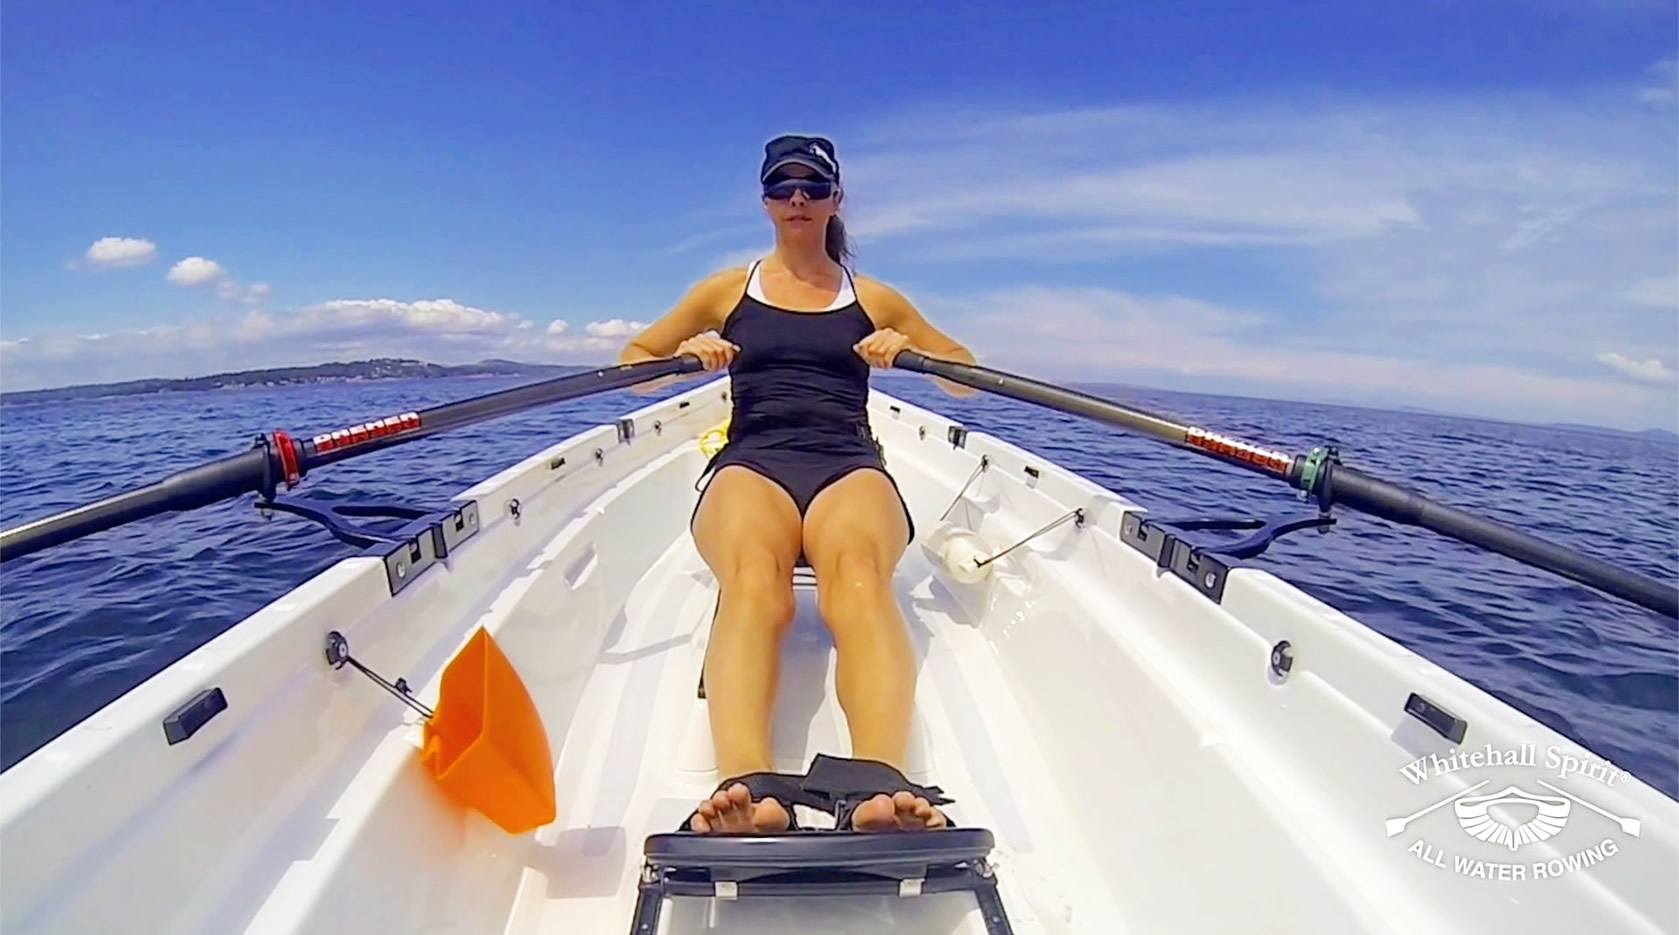 Whitehall Rowing and Sail boats, fun, fitness and adventure